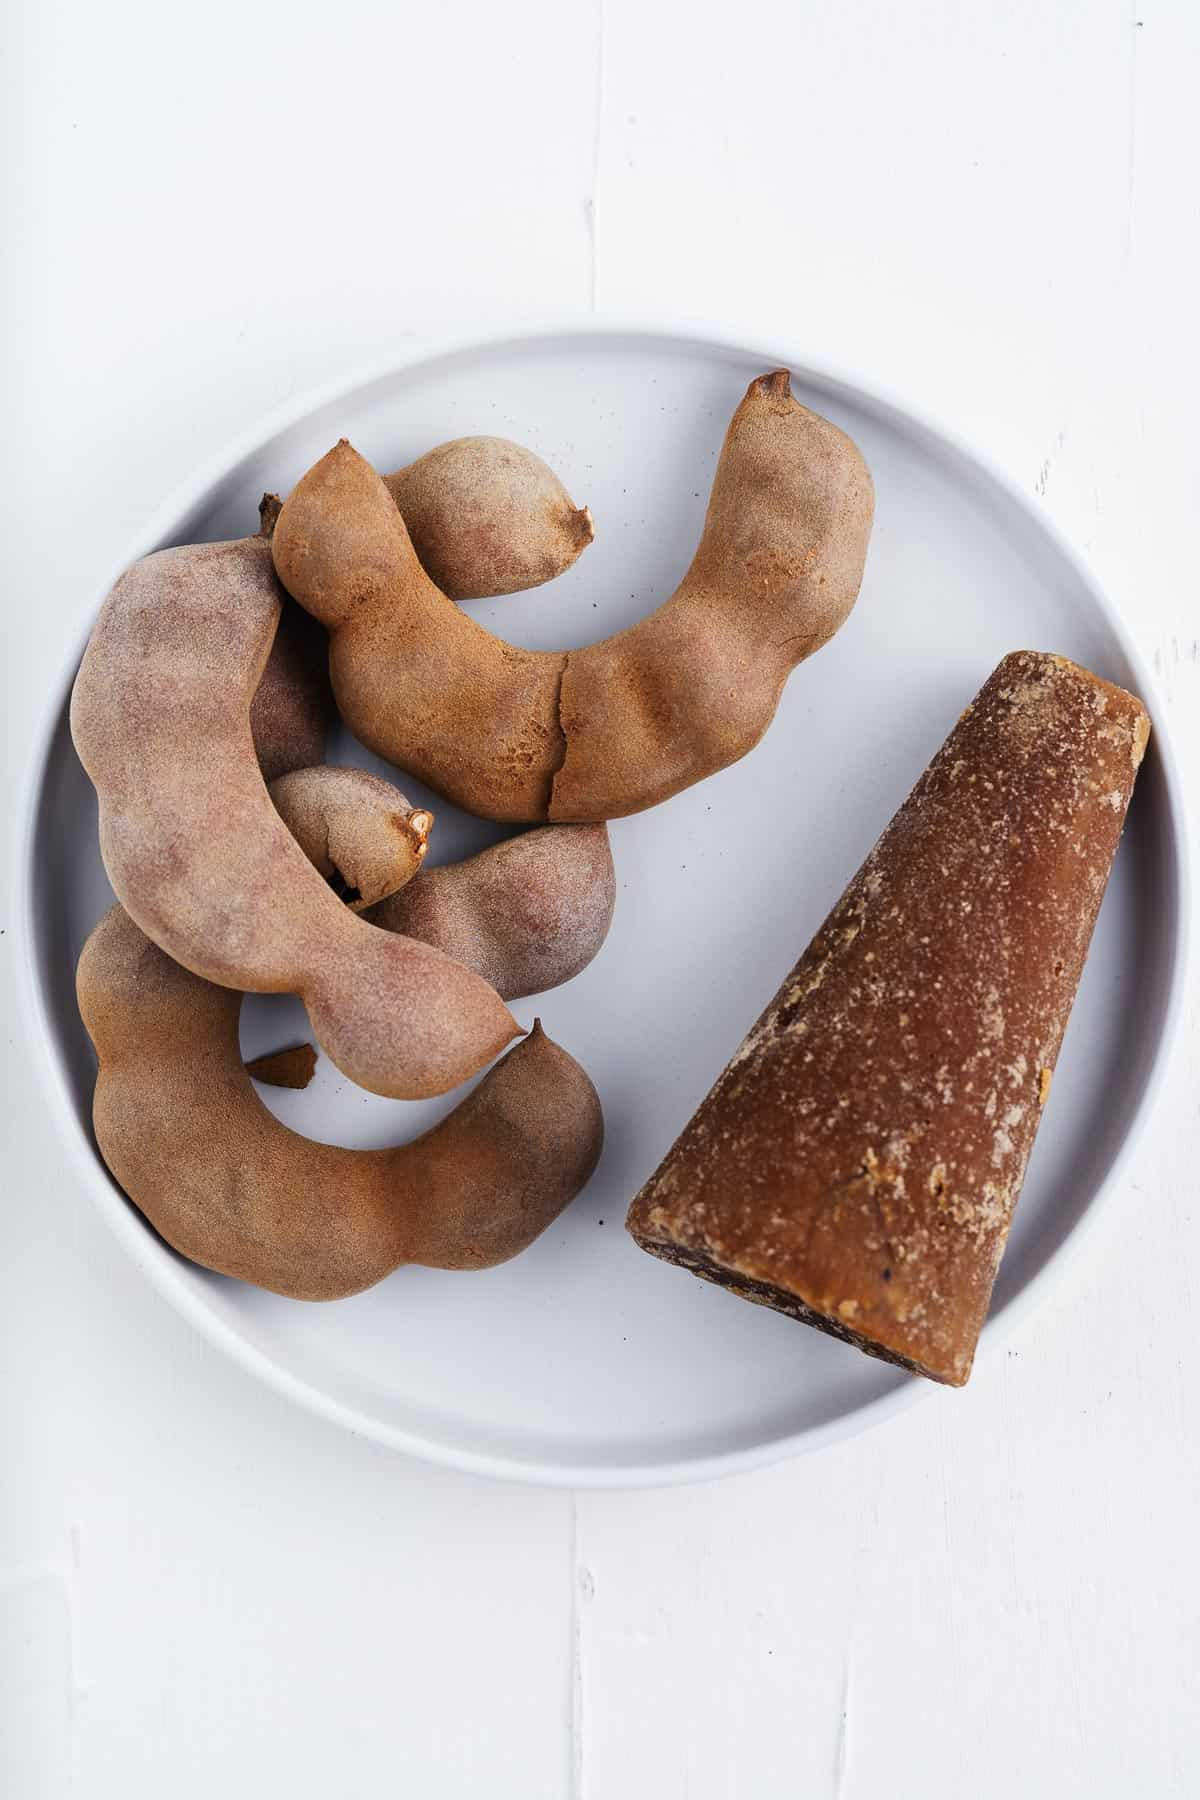 Tamarind Pods and Piloncillo